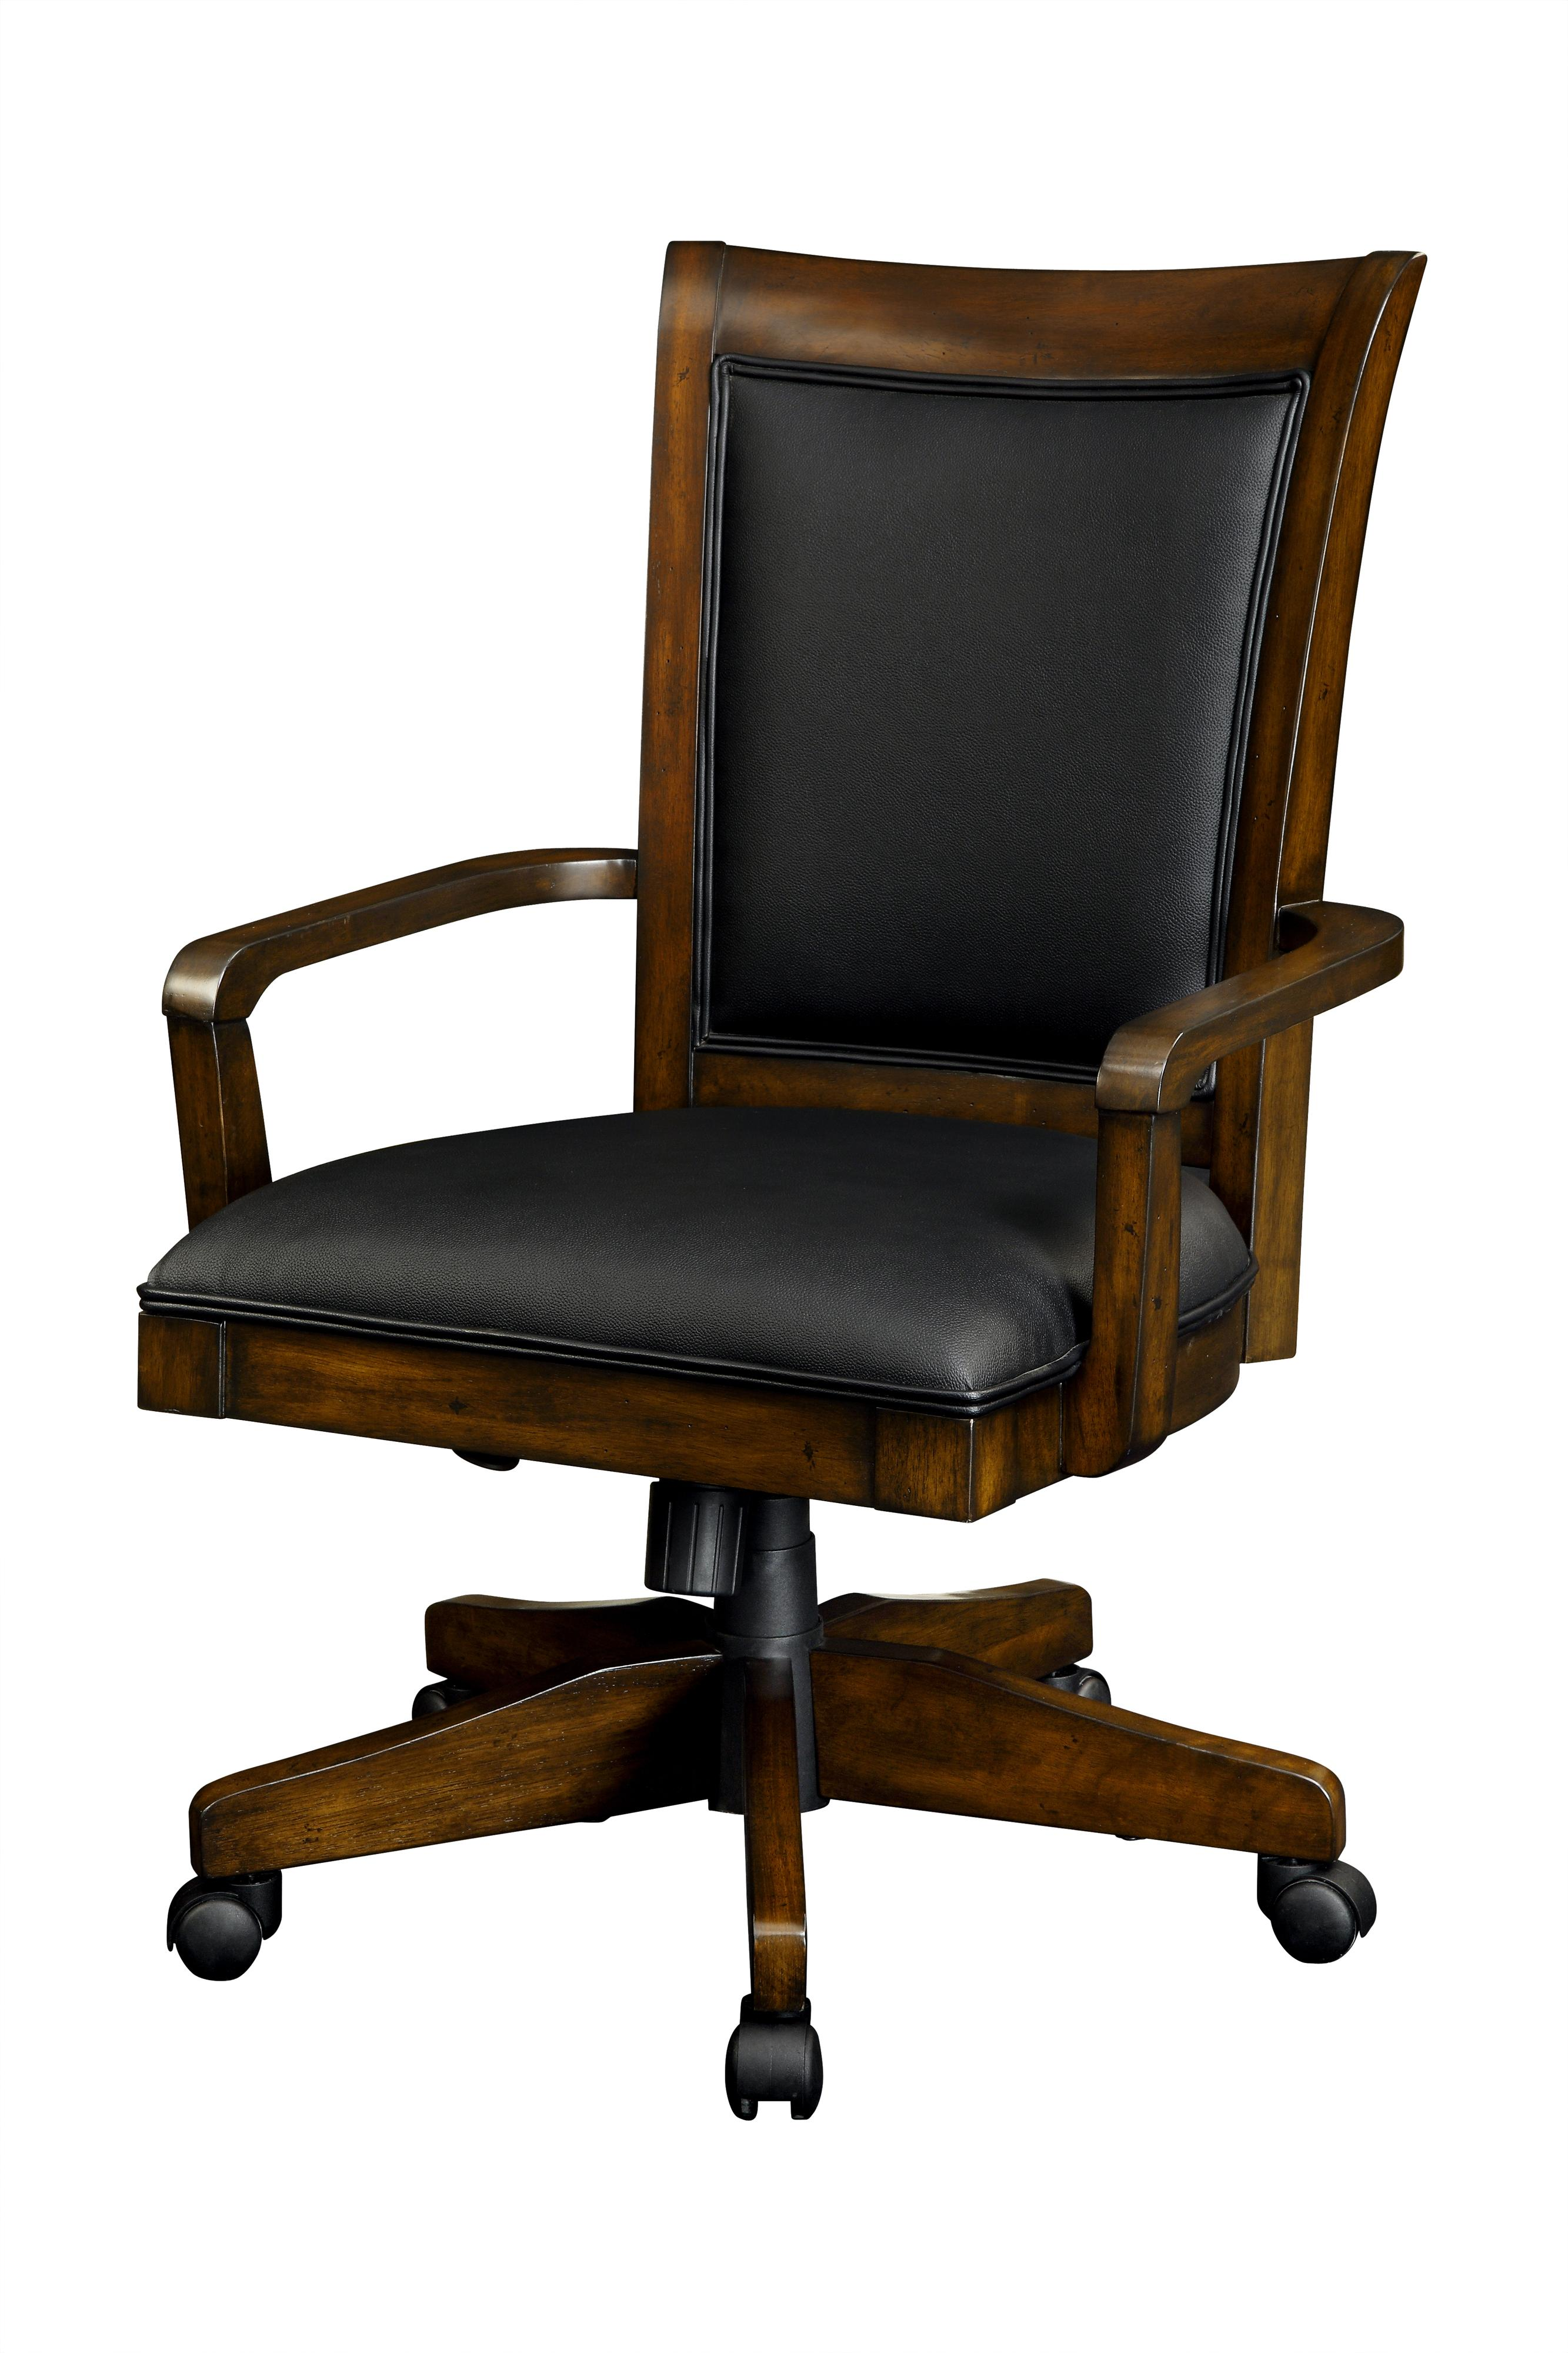 Office Chairs Soho Upholstered Swivel Tilt Office Desk Chair By Flexsteel  Wynwood Collection